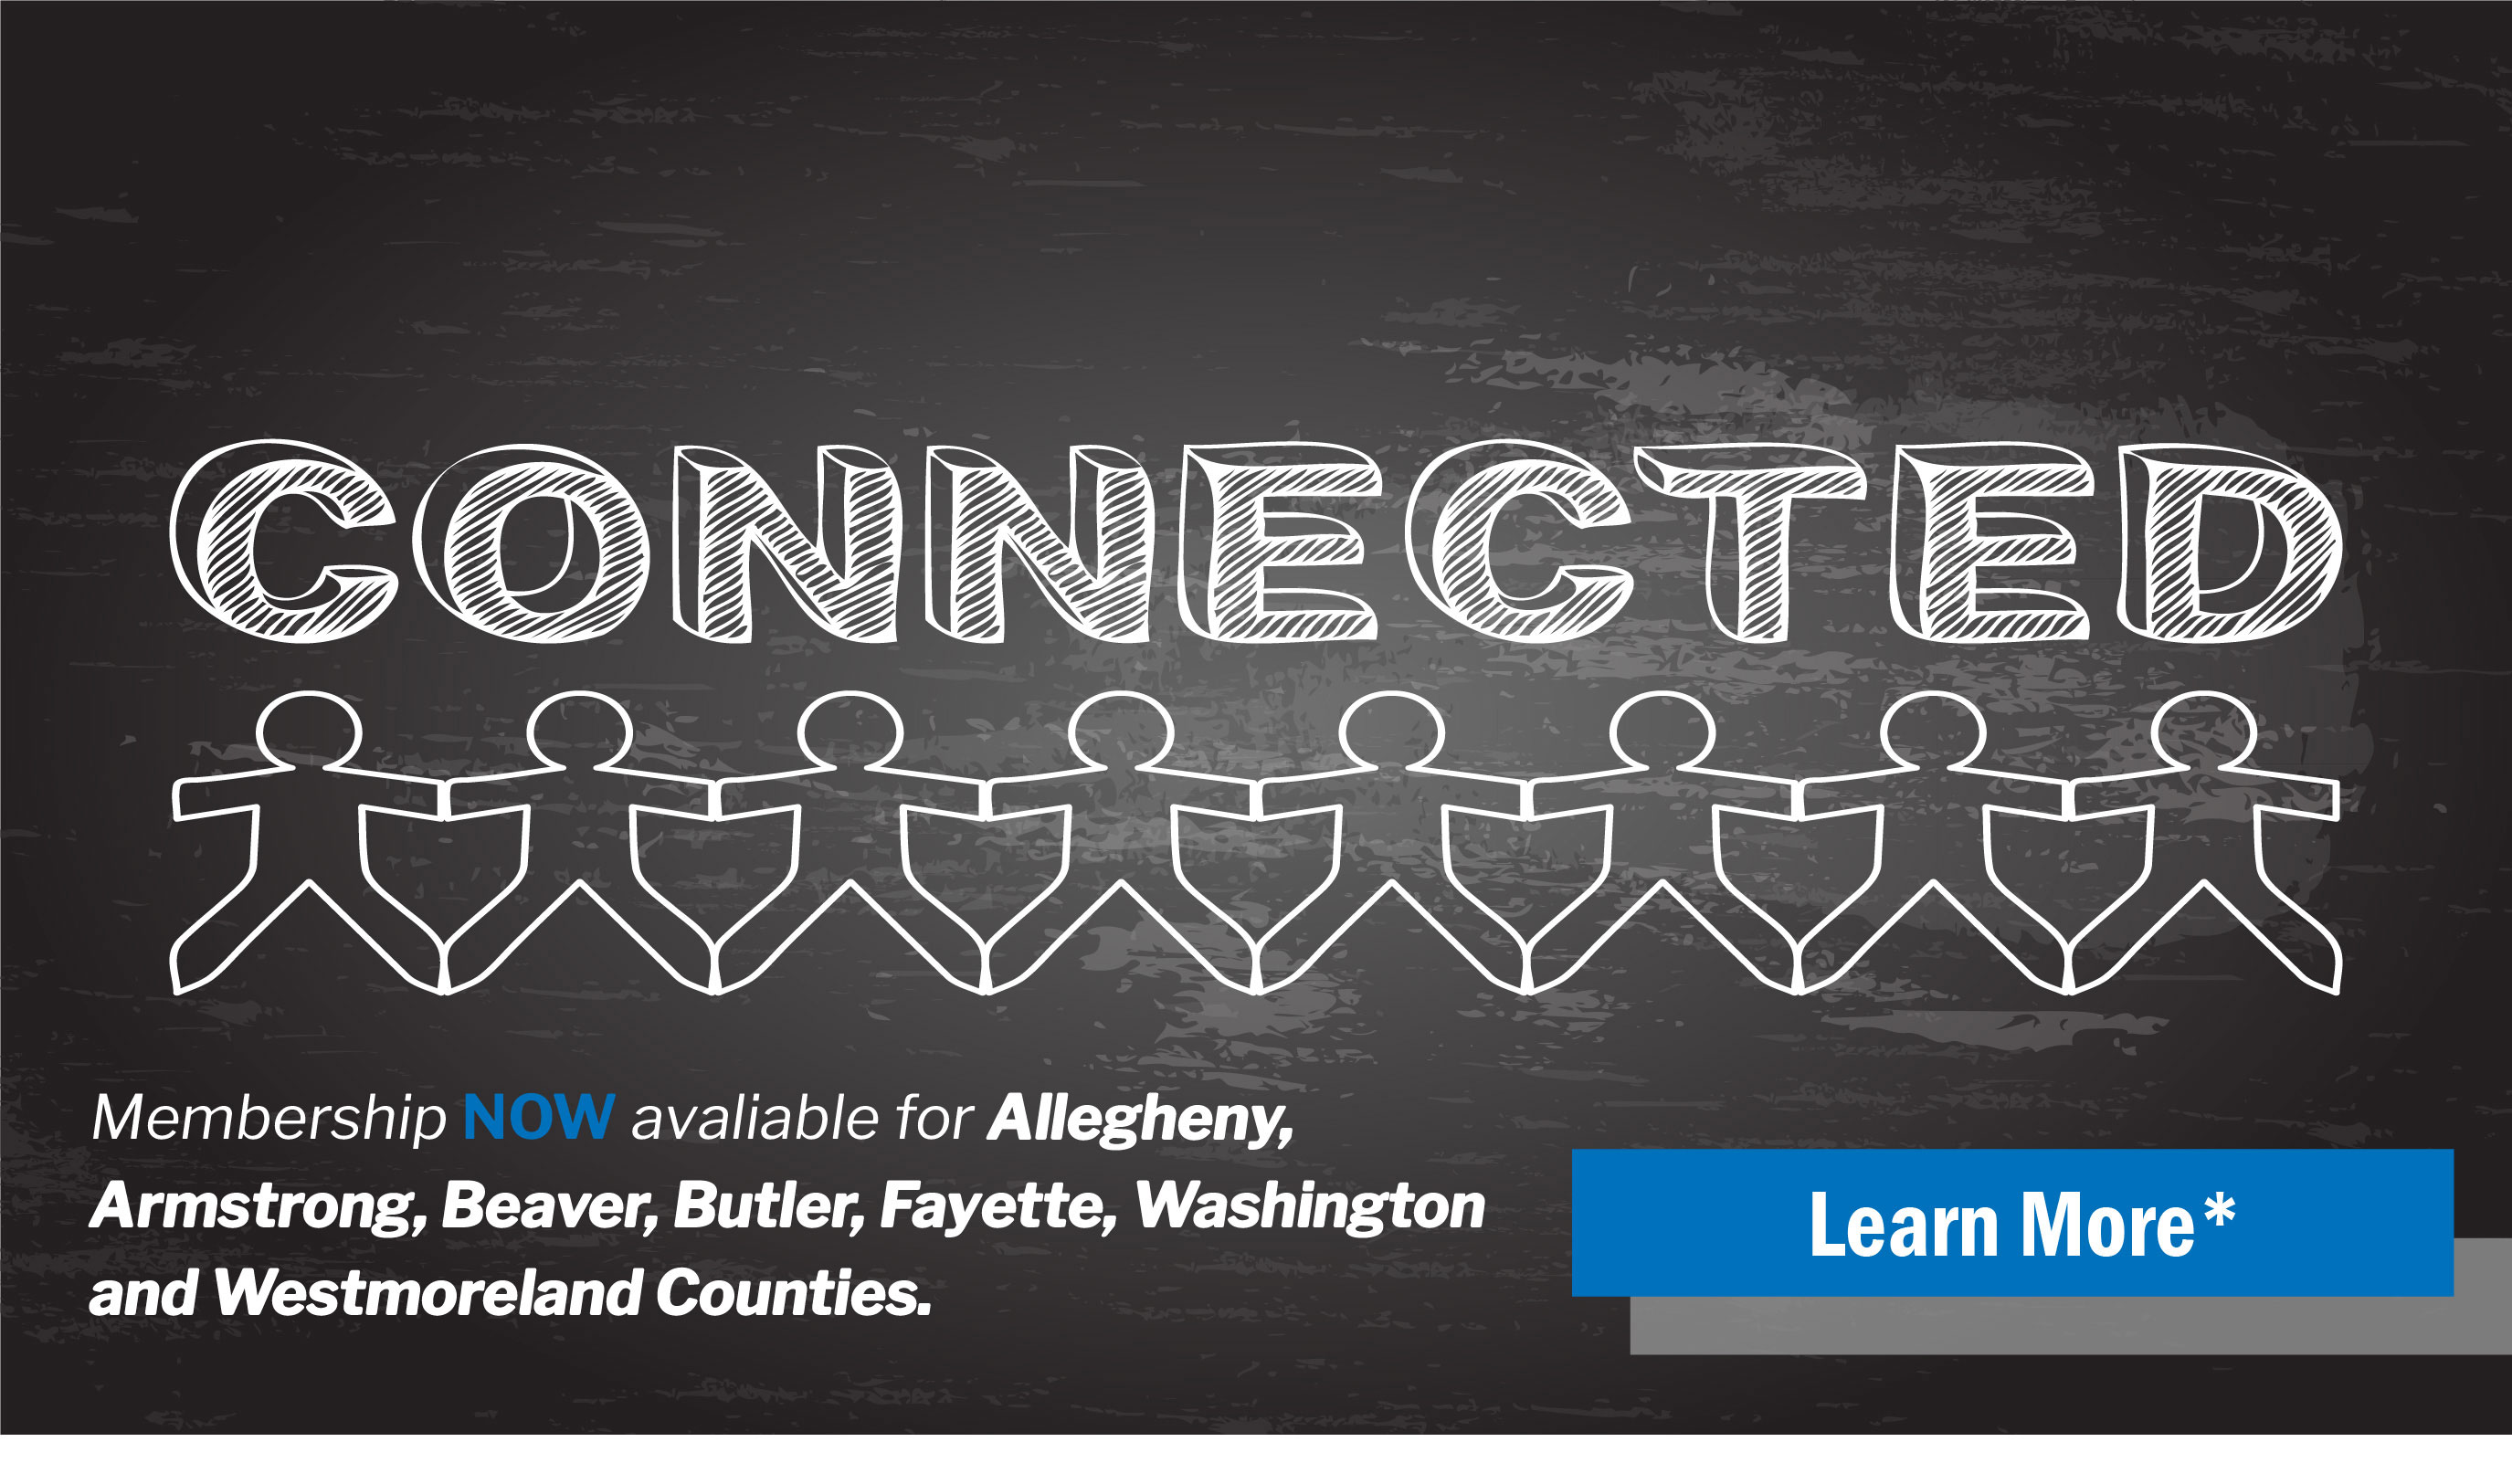 Membership Now Available for Allegheny, Armstrong, Beaver, Butler, Fayette, Washington, and Westmoreland Counties!